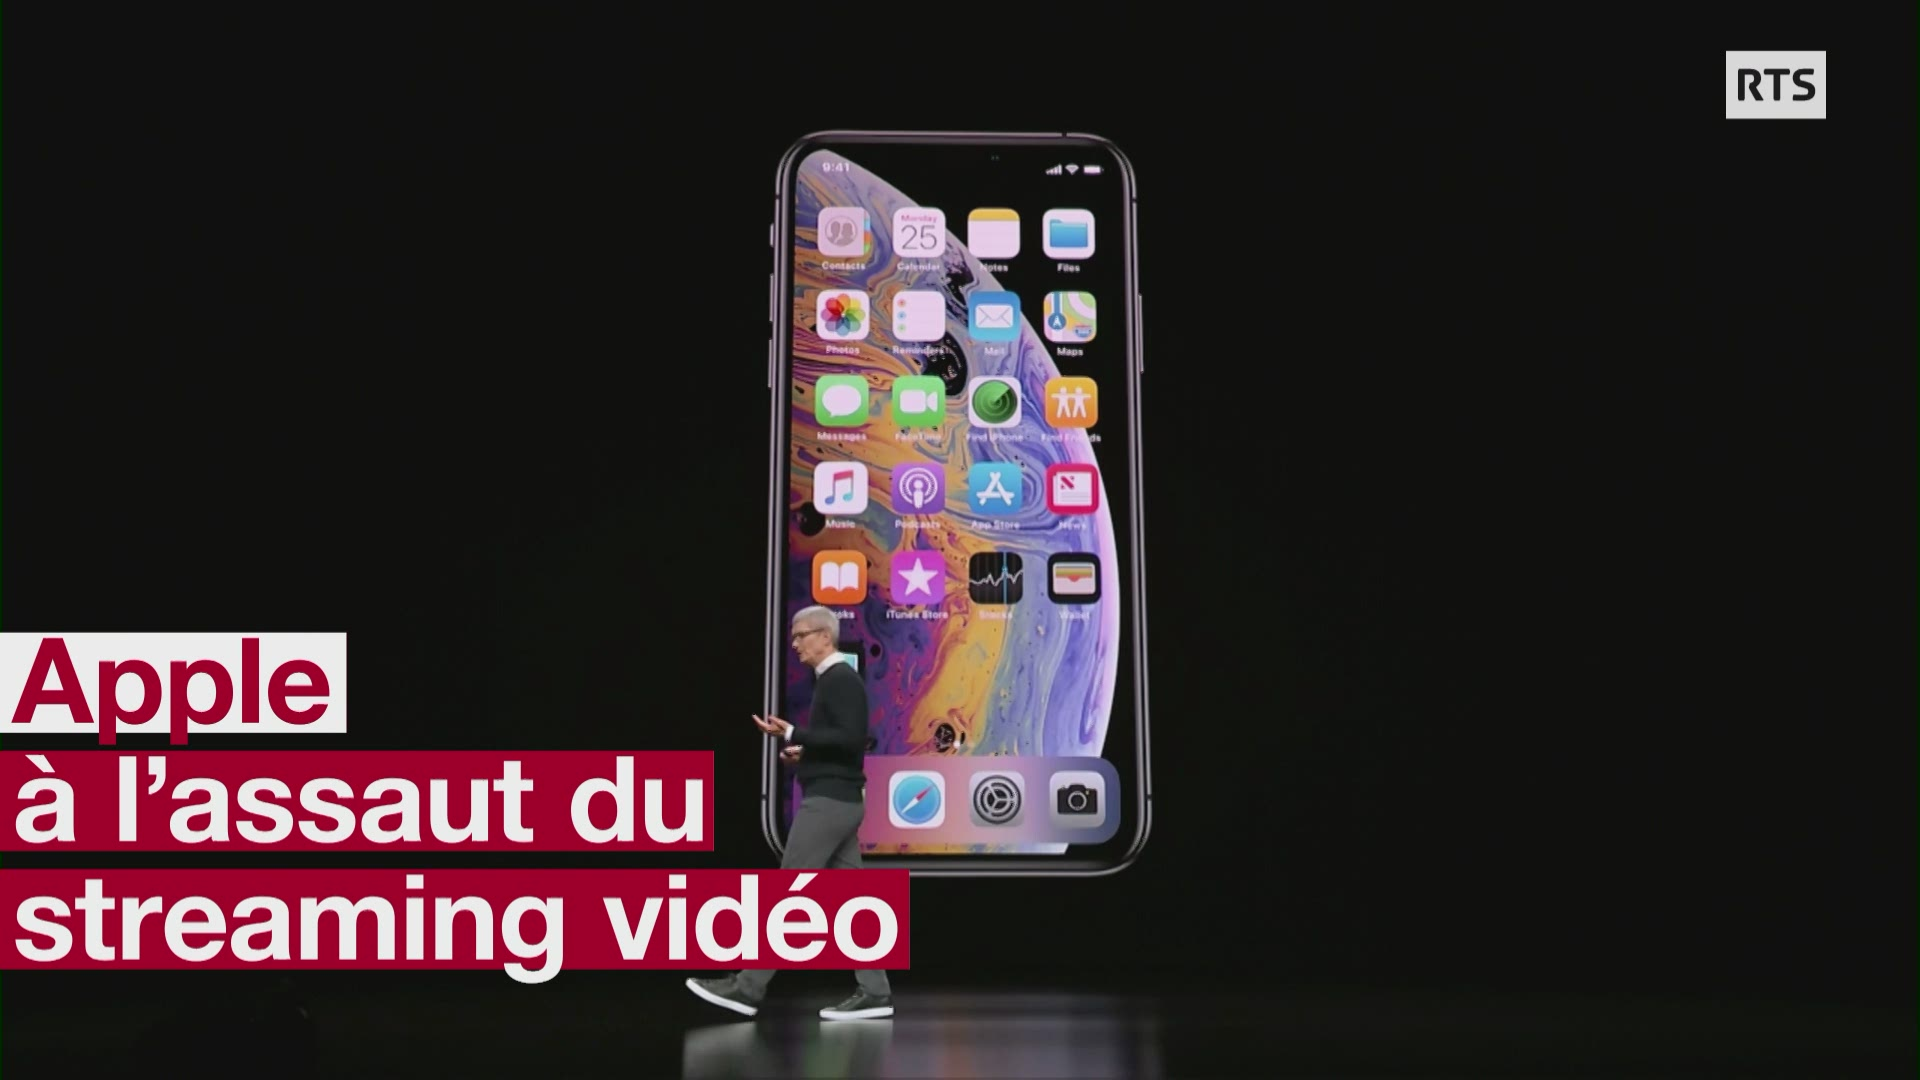 Apple a lassaut du streaming video